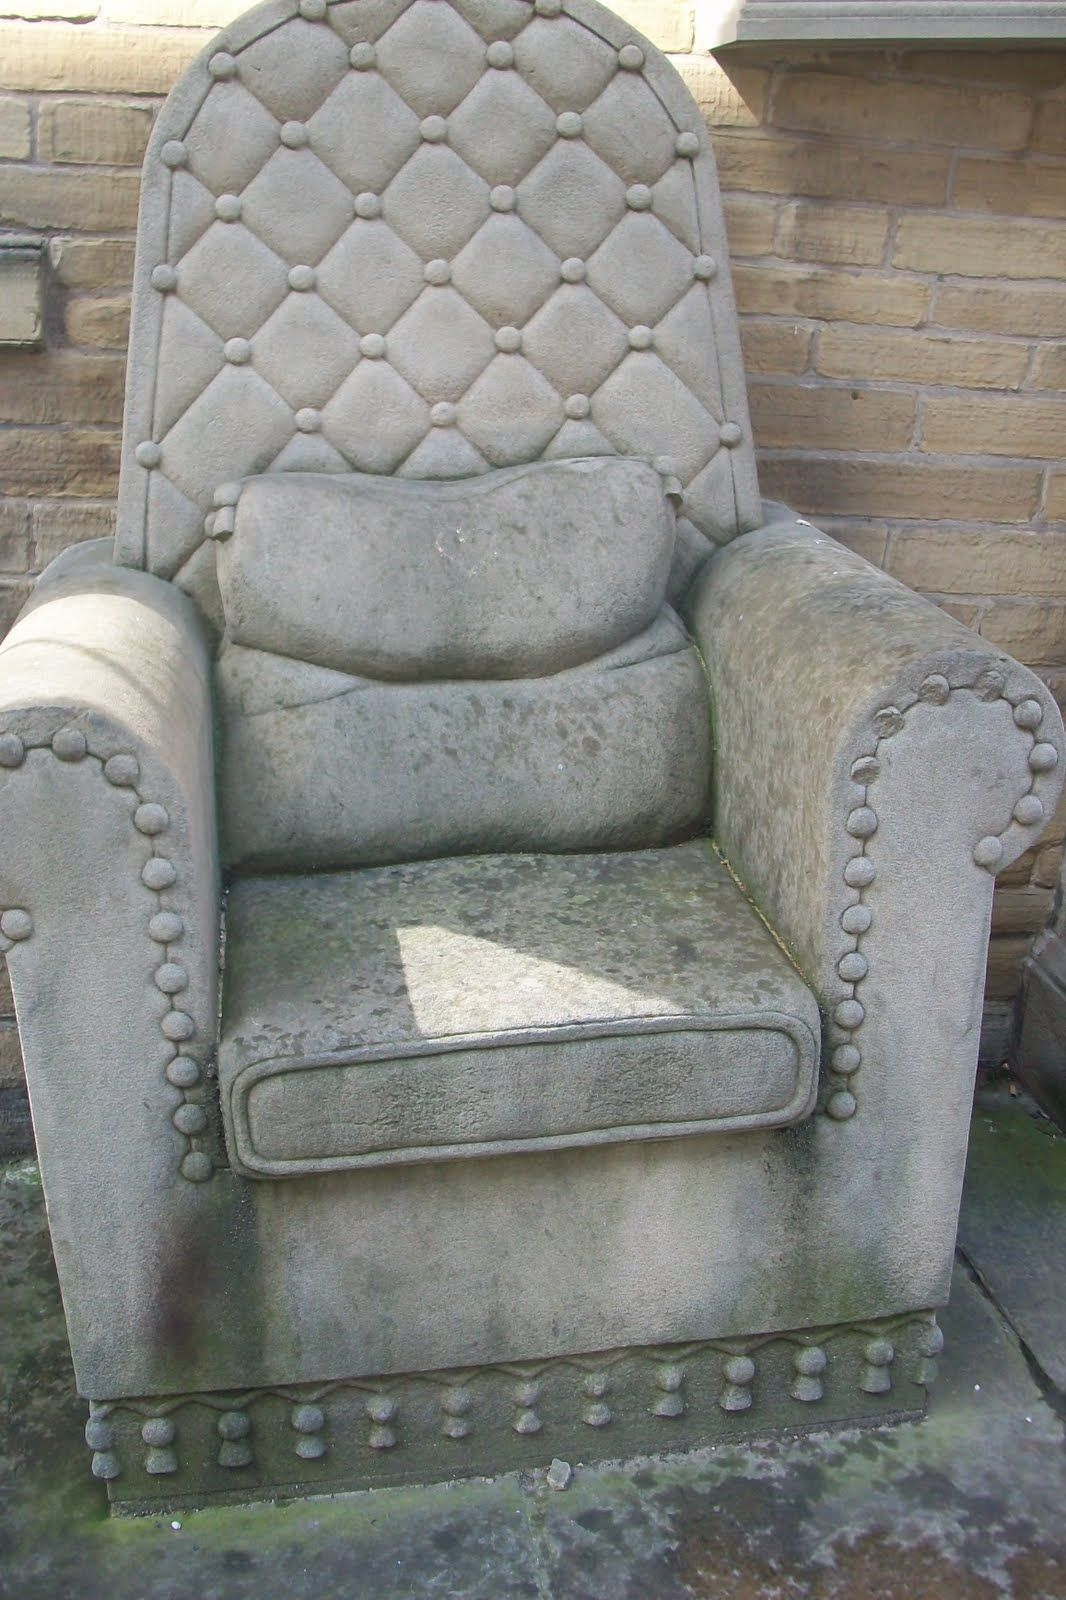 old chair covered in concrete a layer at a time #recycle & old chair covered in concrete a layer at a time #recycle | Recycle ...